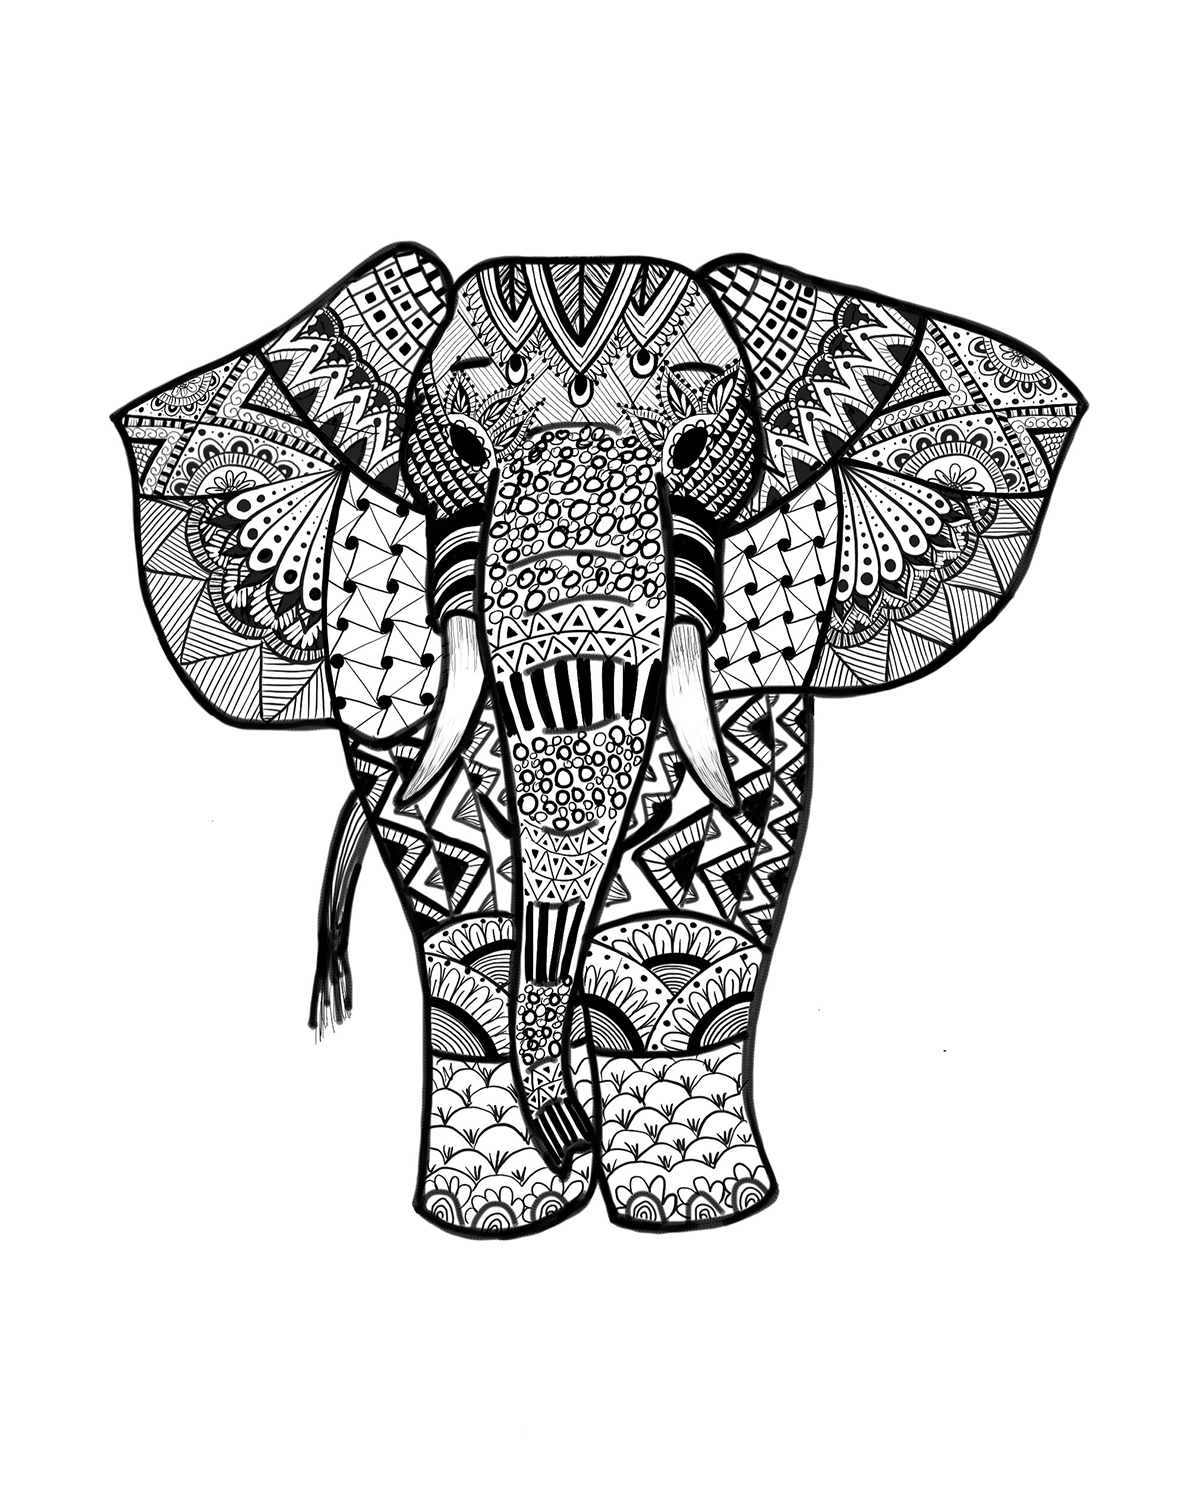 coloring book elephant images cute baby elephant coloring pages get coloring pages coloring elephant images book